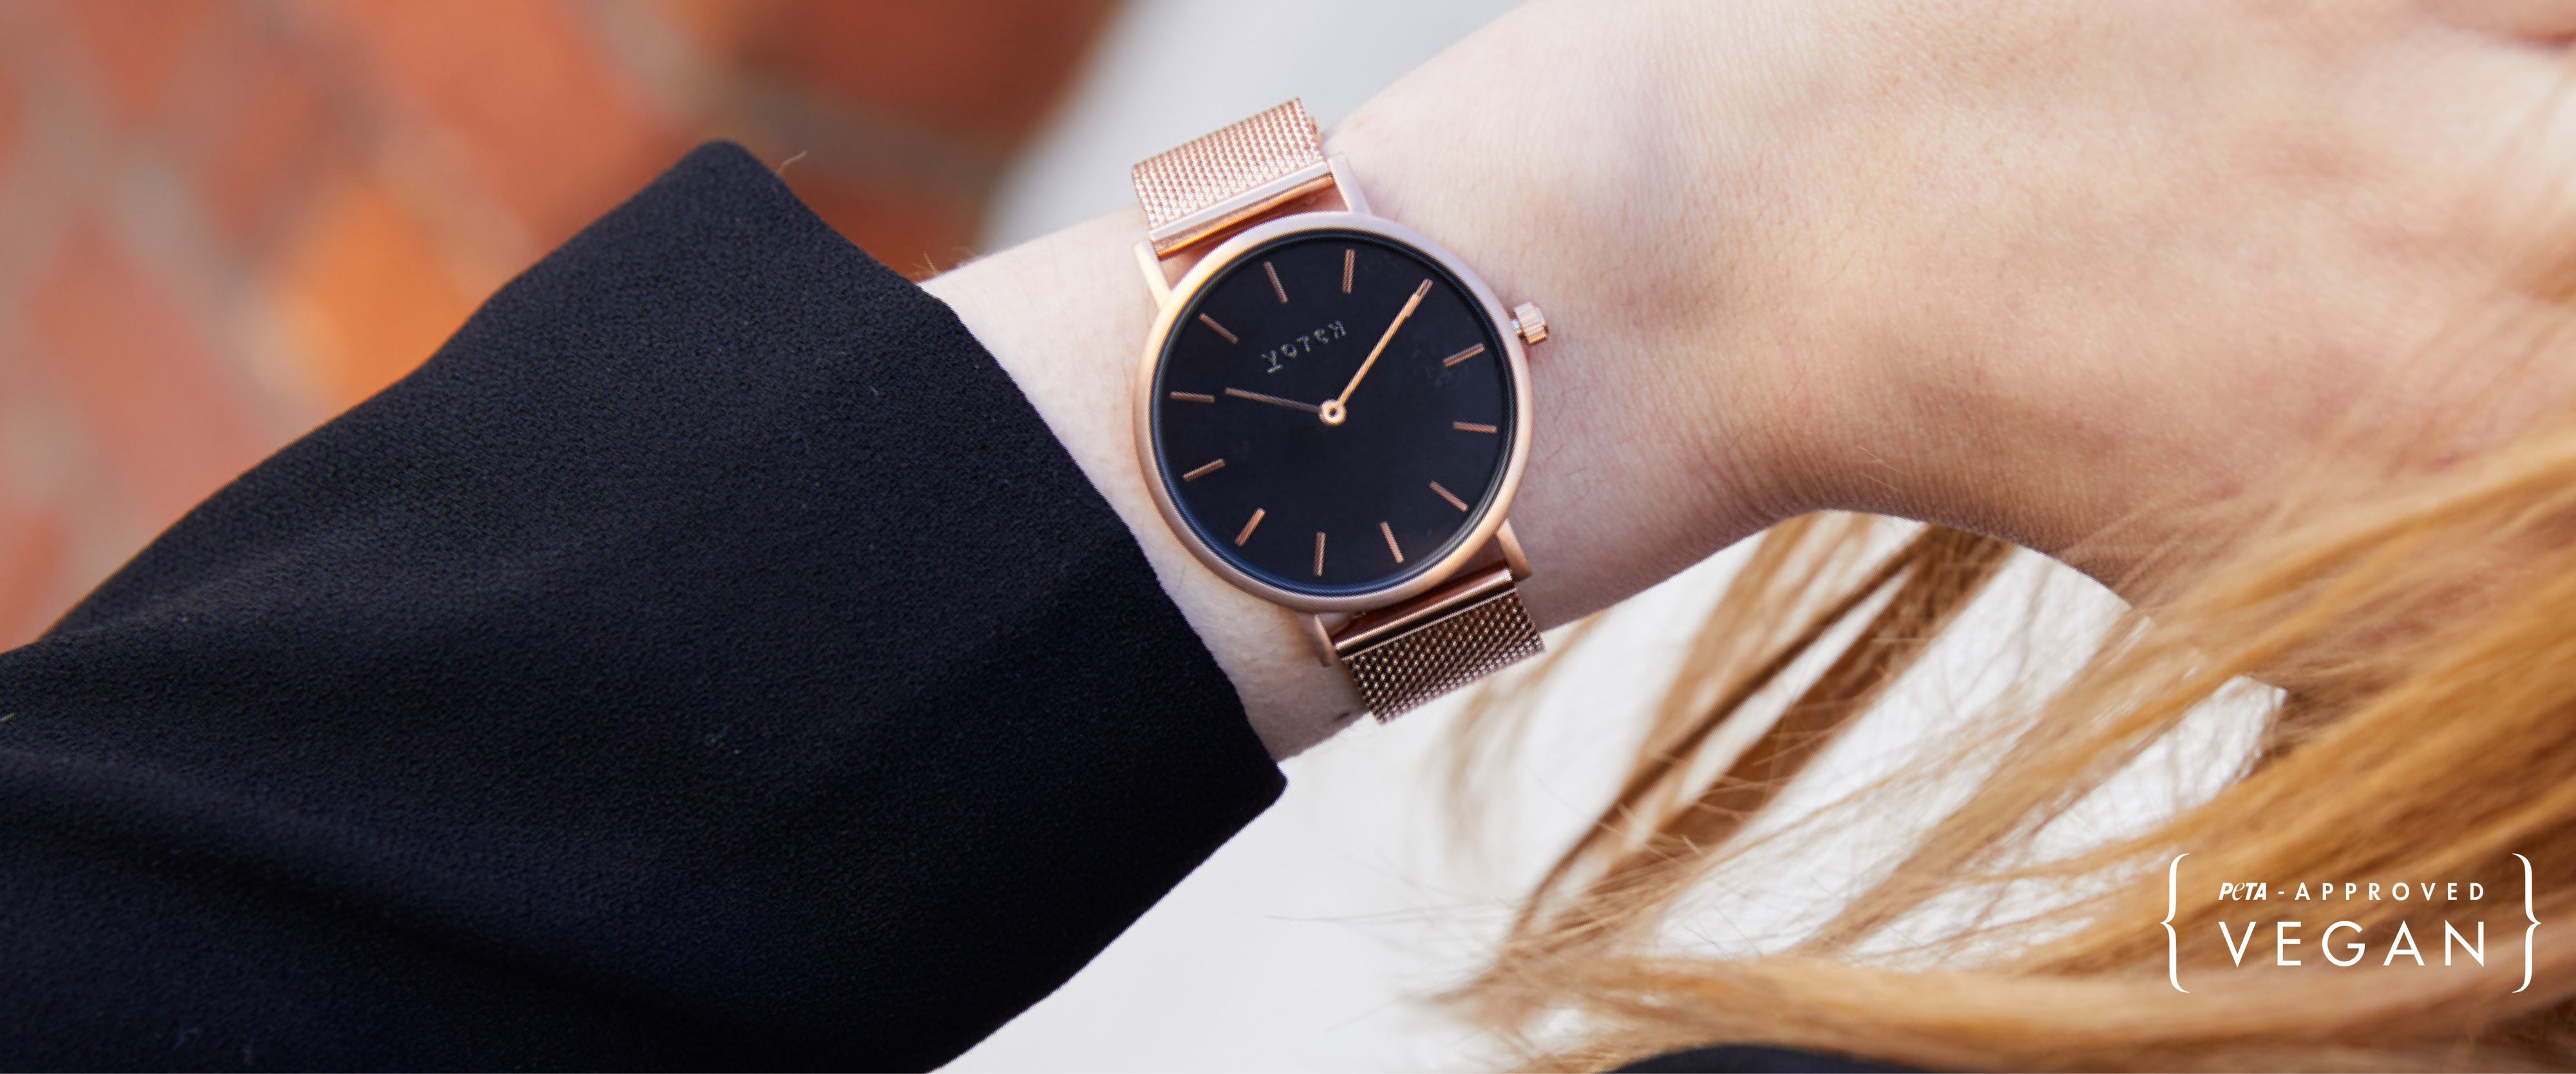 Votch vegan watches, cruelty-free jewelry